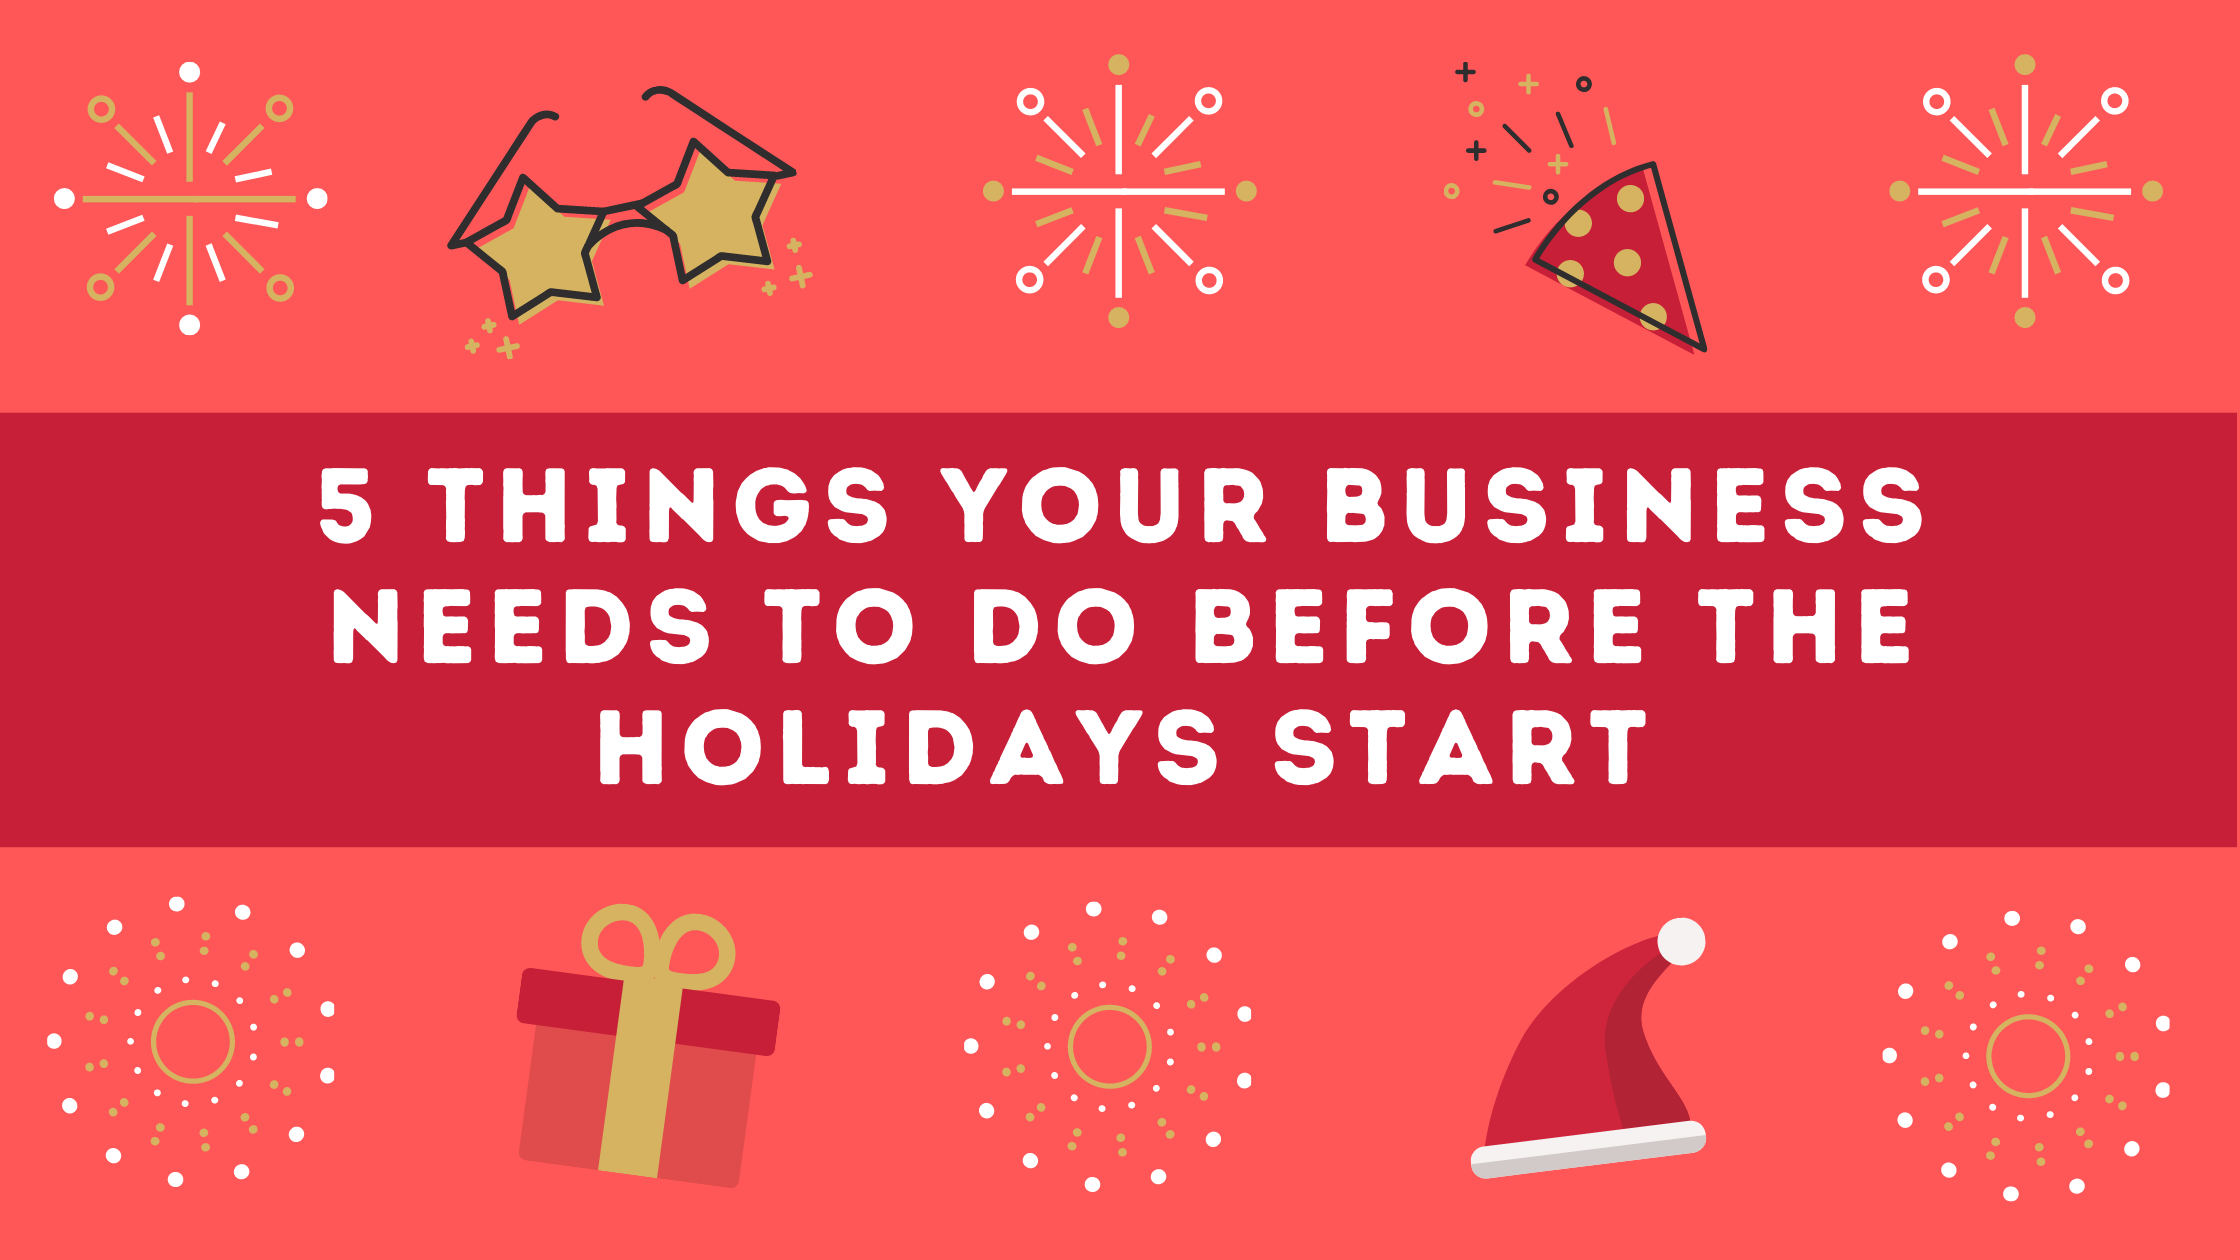 5 Things Your Business Needs to Do Before the Holidays Start